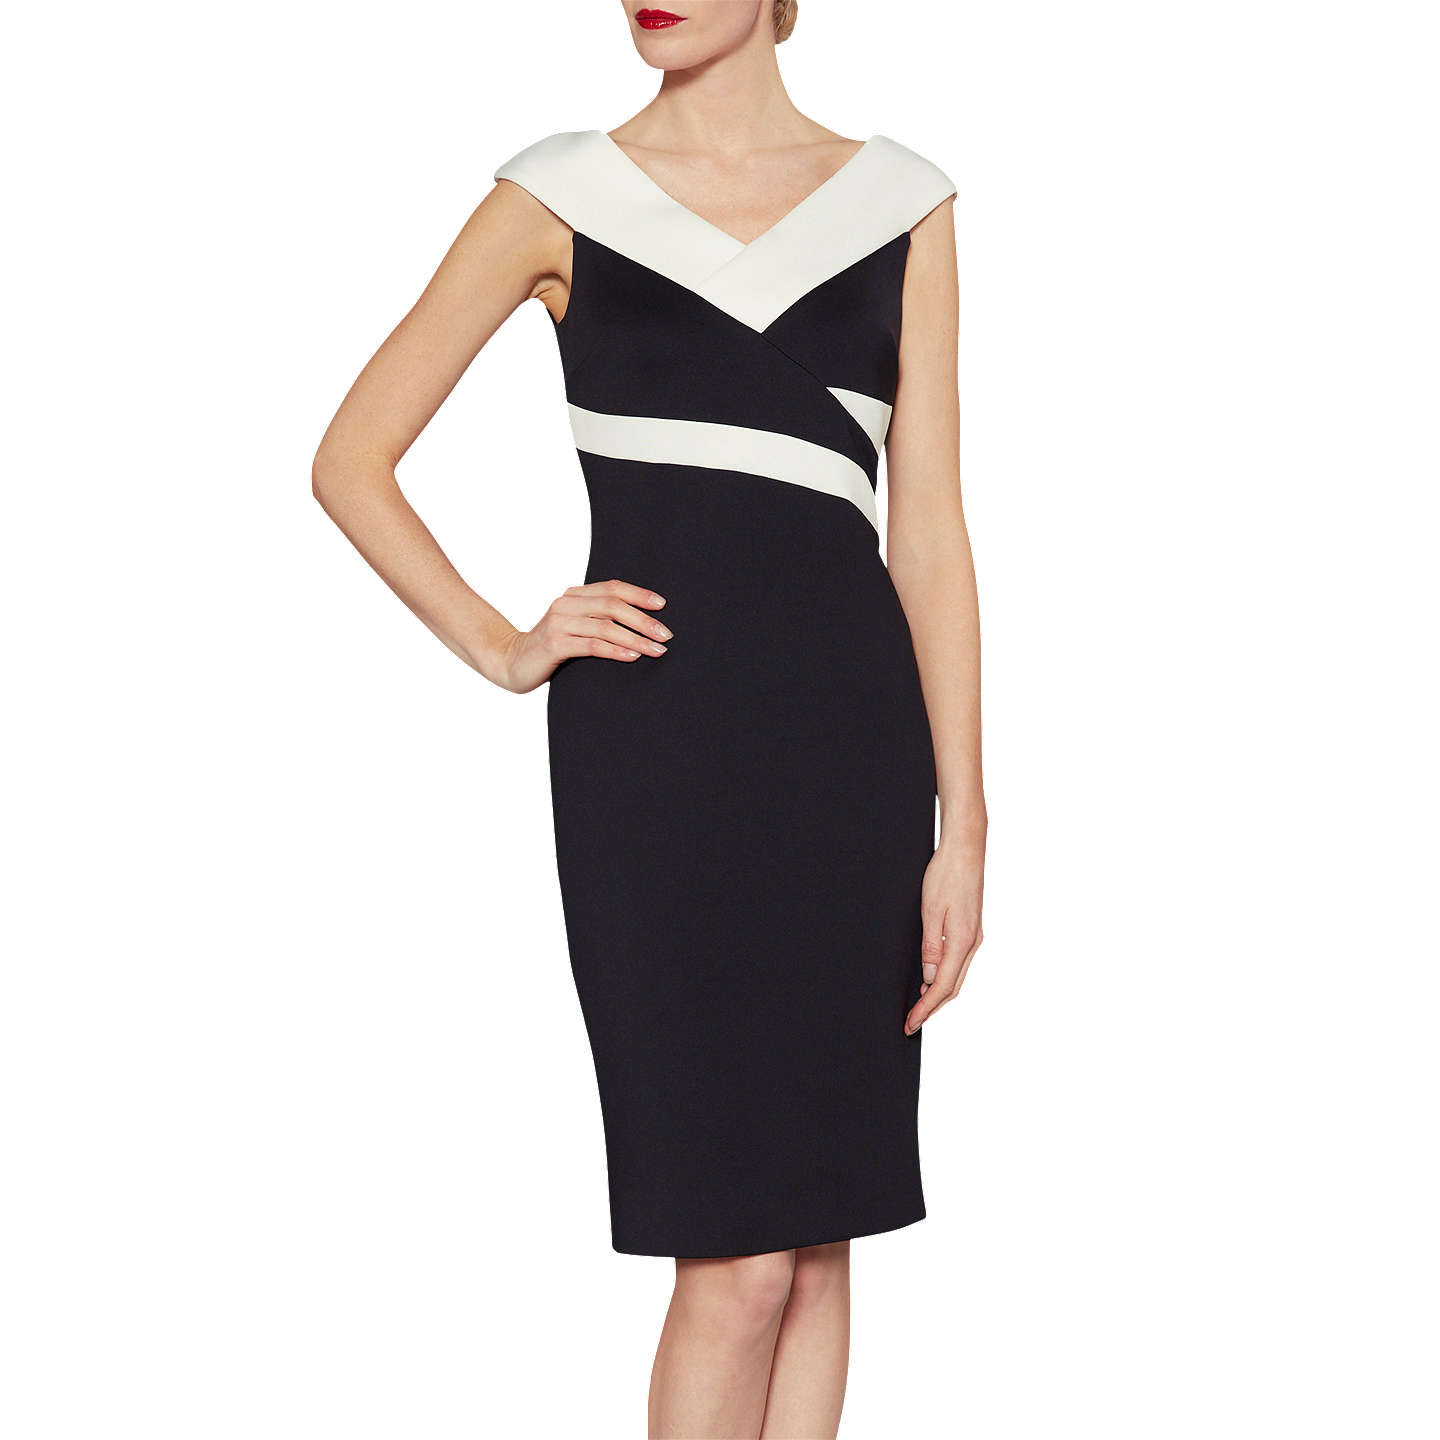 BuyGina Bacconi Janet Contrast Panel Dress, Black/Ivory, 10 Online at johnlewis.com